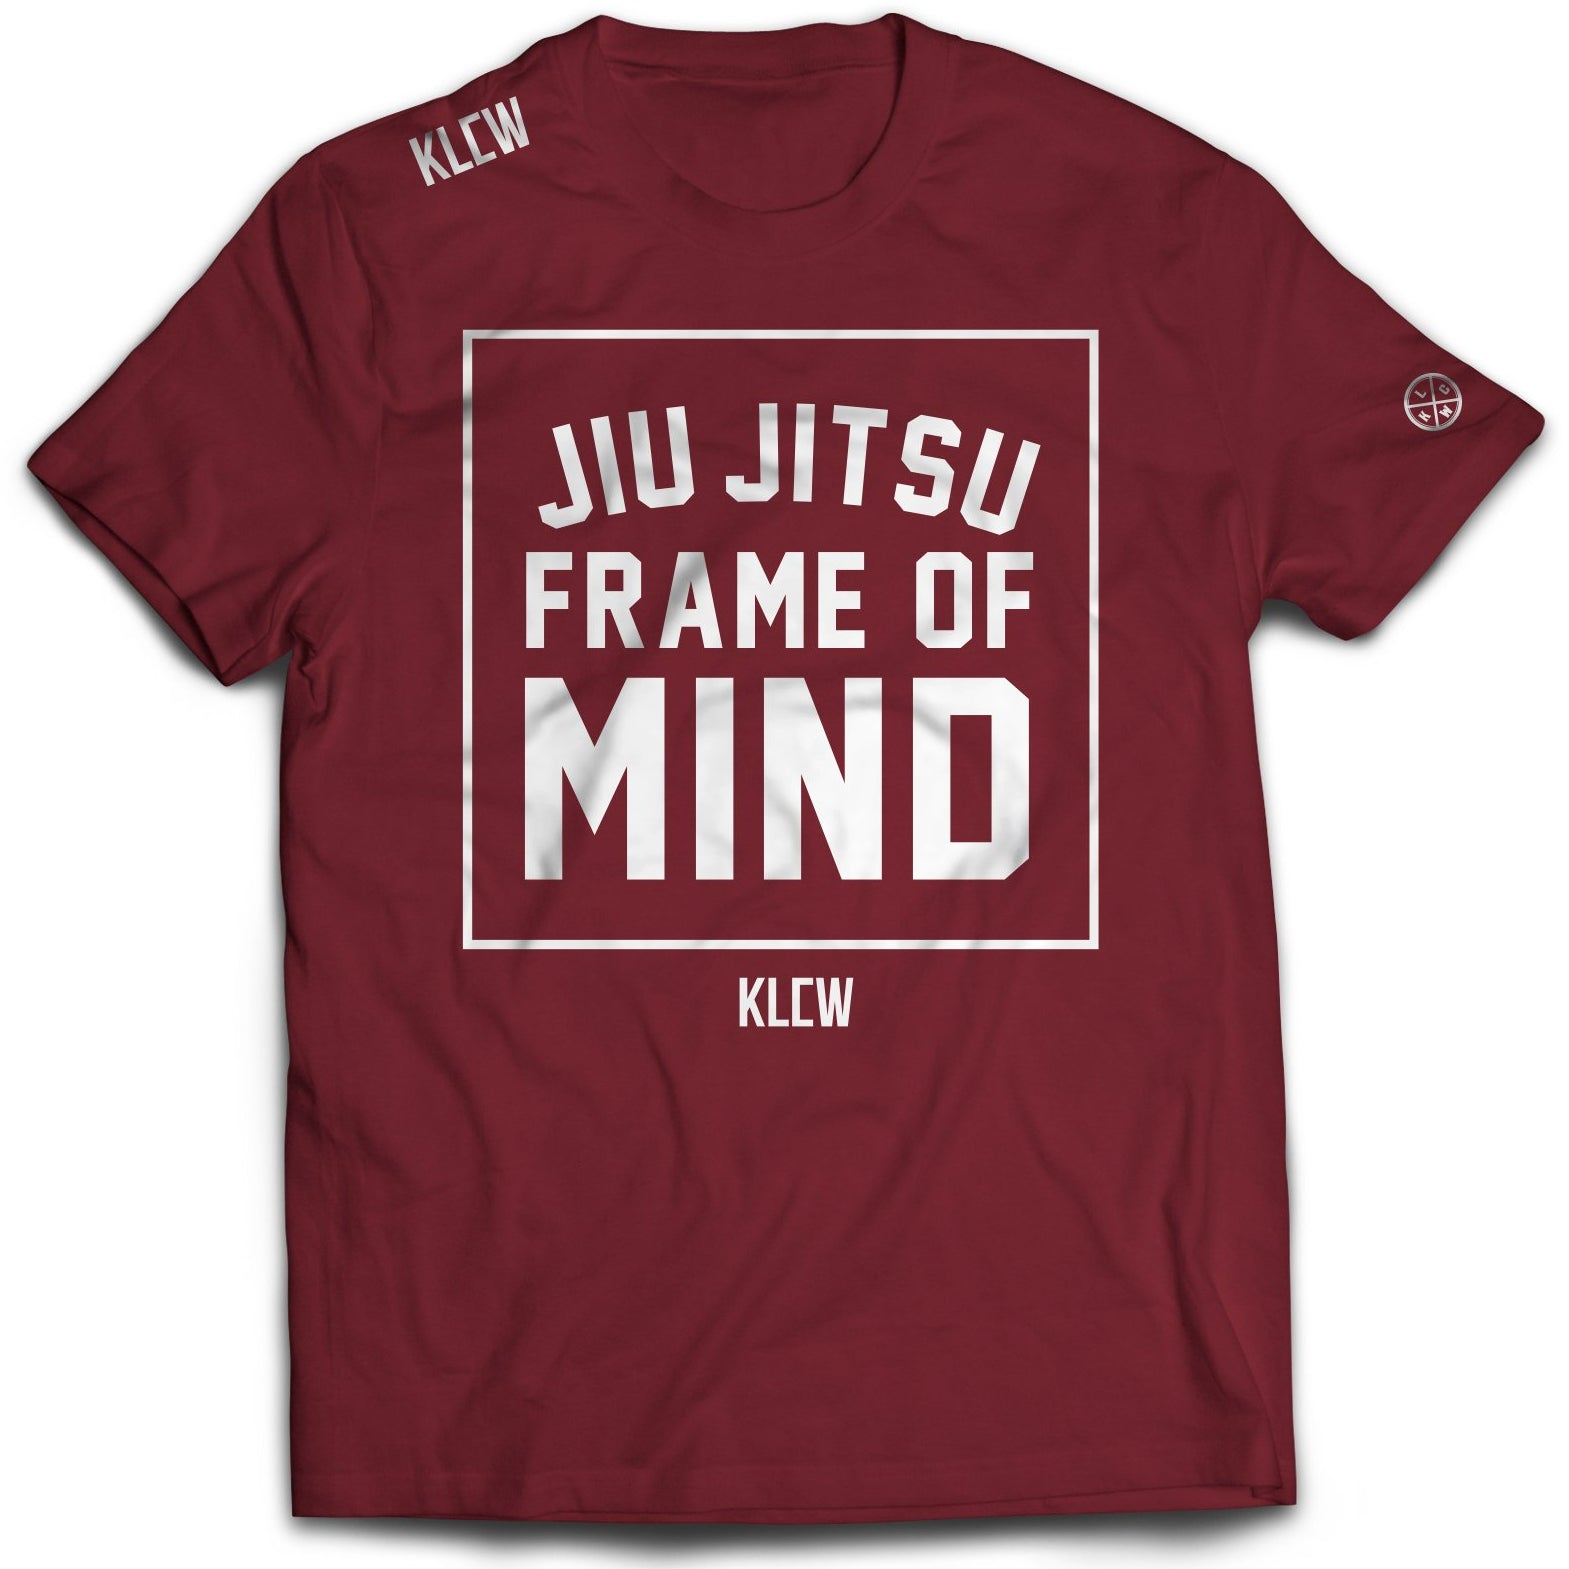 JIU JITSU FRAME OF MIND T-SHIRT - MAROON